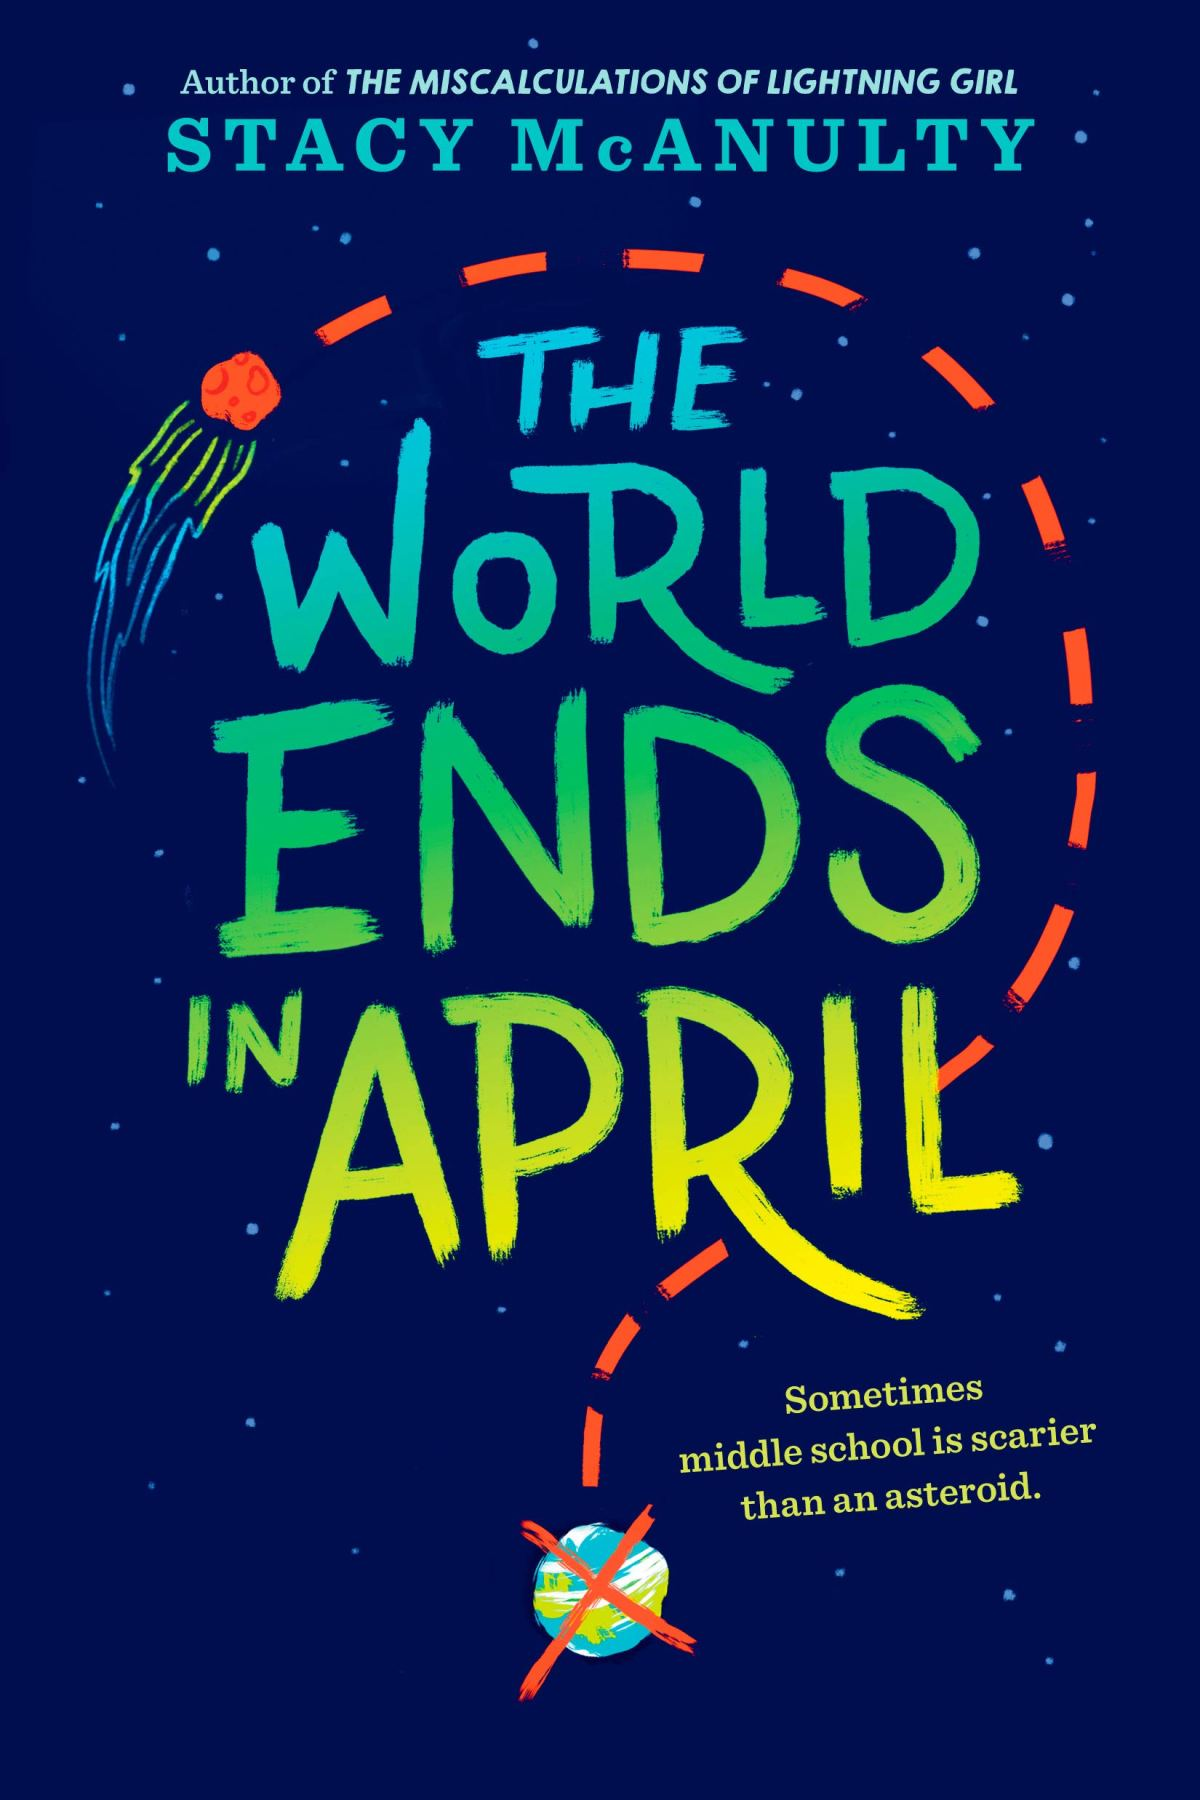 Book cover image for the World Ends in April by Stacy McAnulty